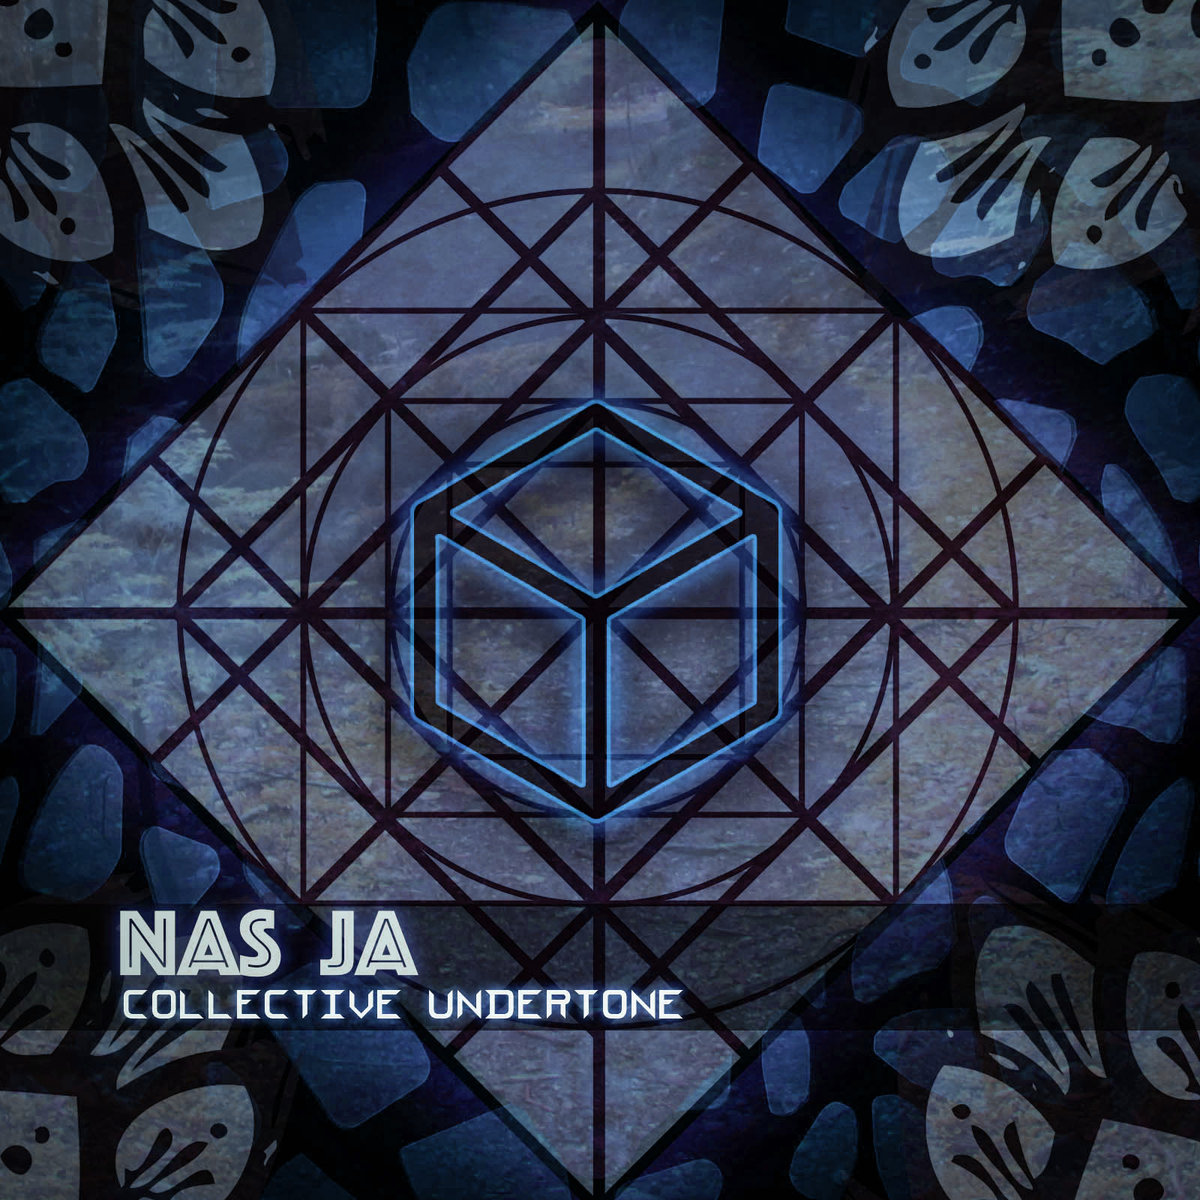 Nas-Ja - Arctic Choir's @ 'Collective Undertone' album (bass, electronic)